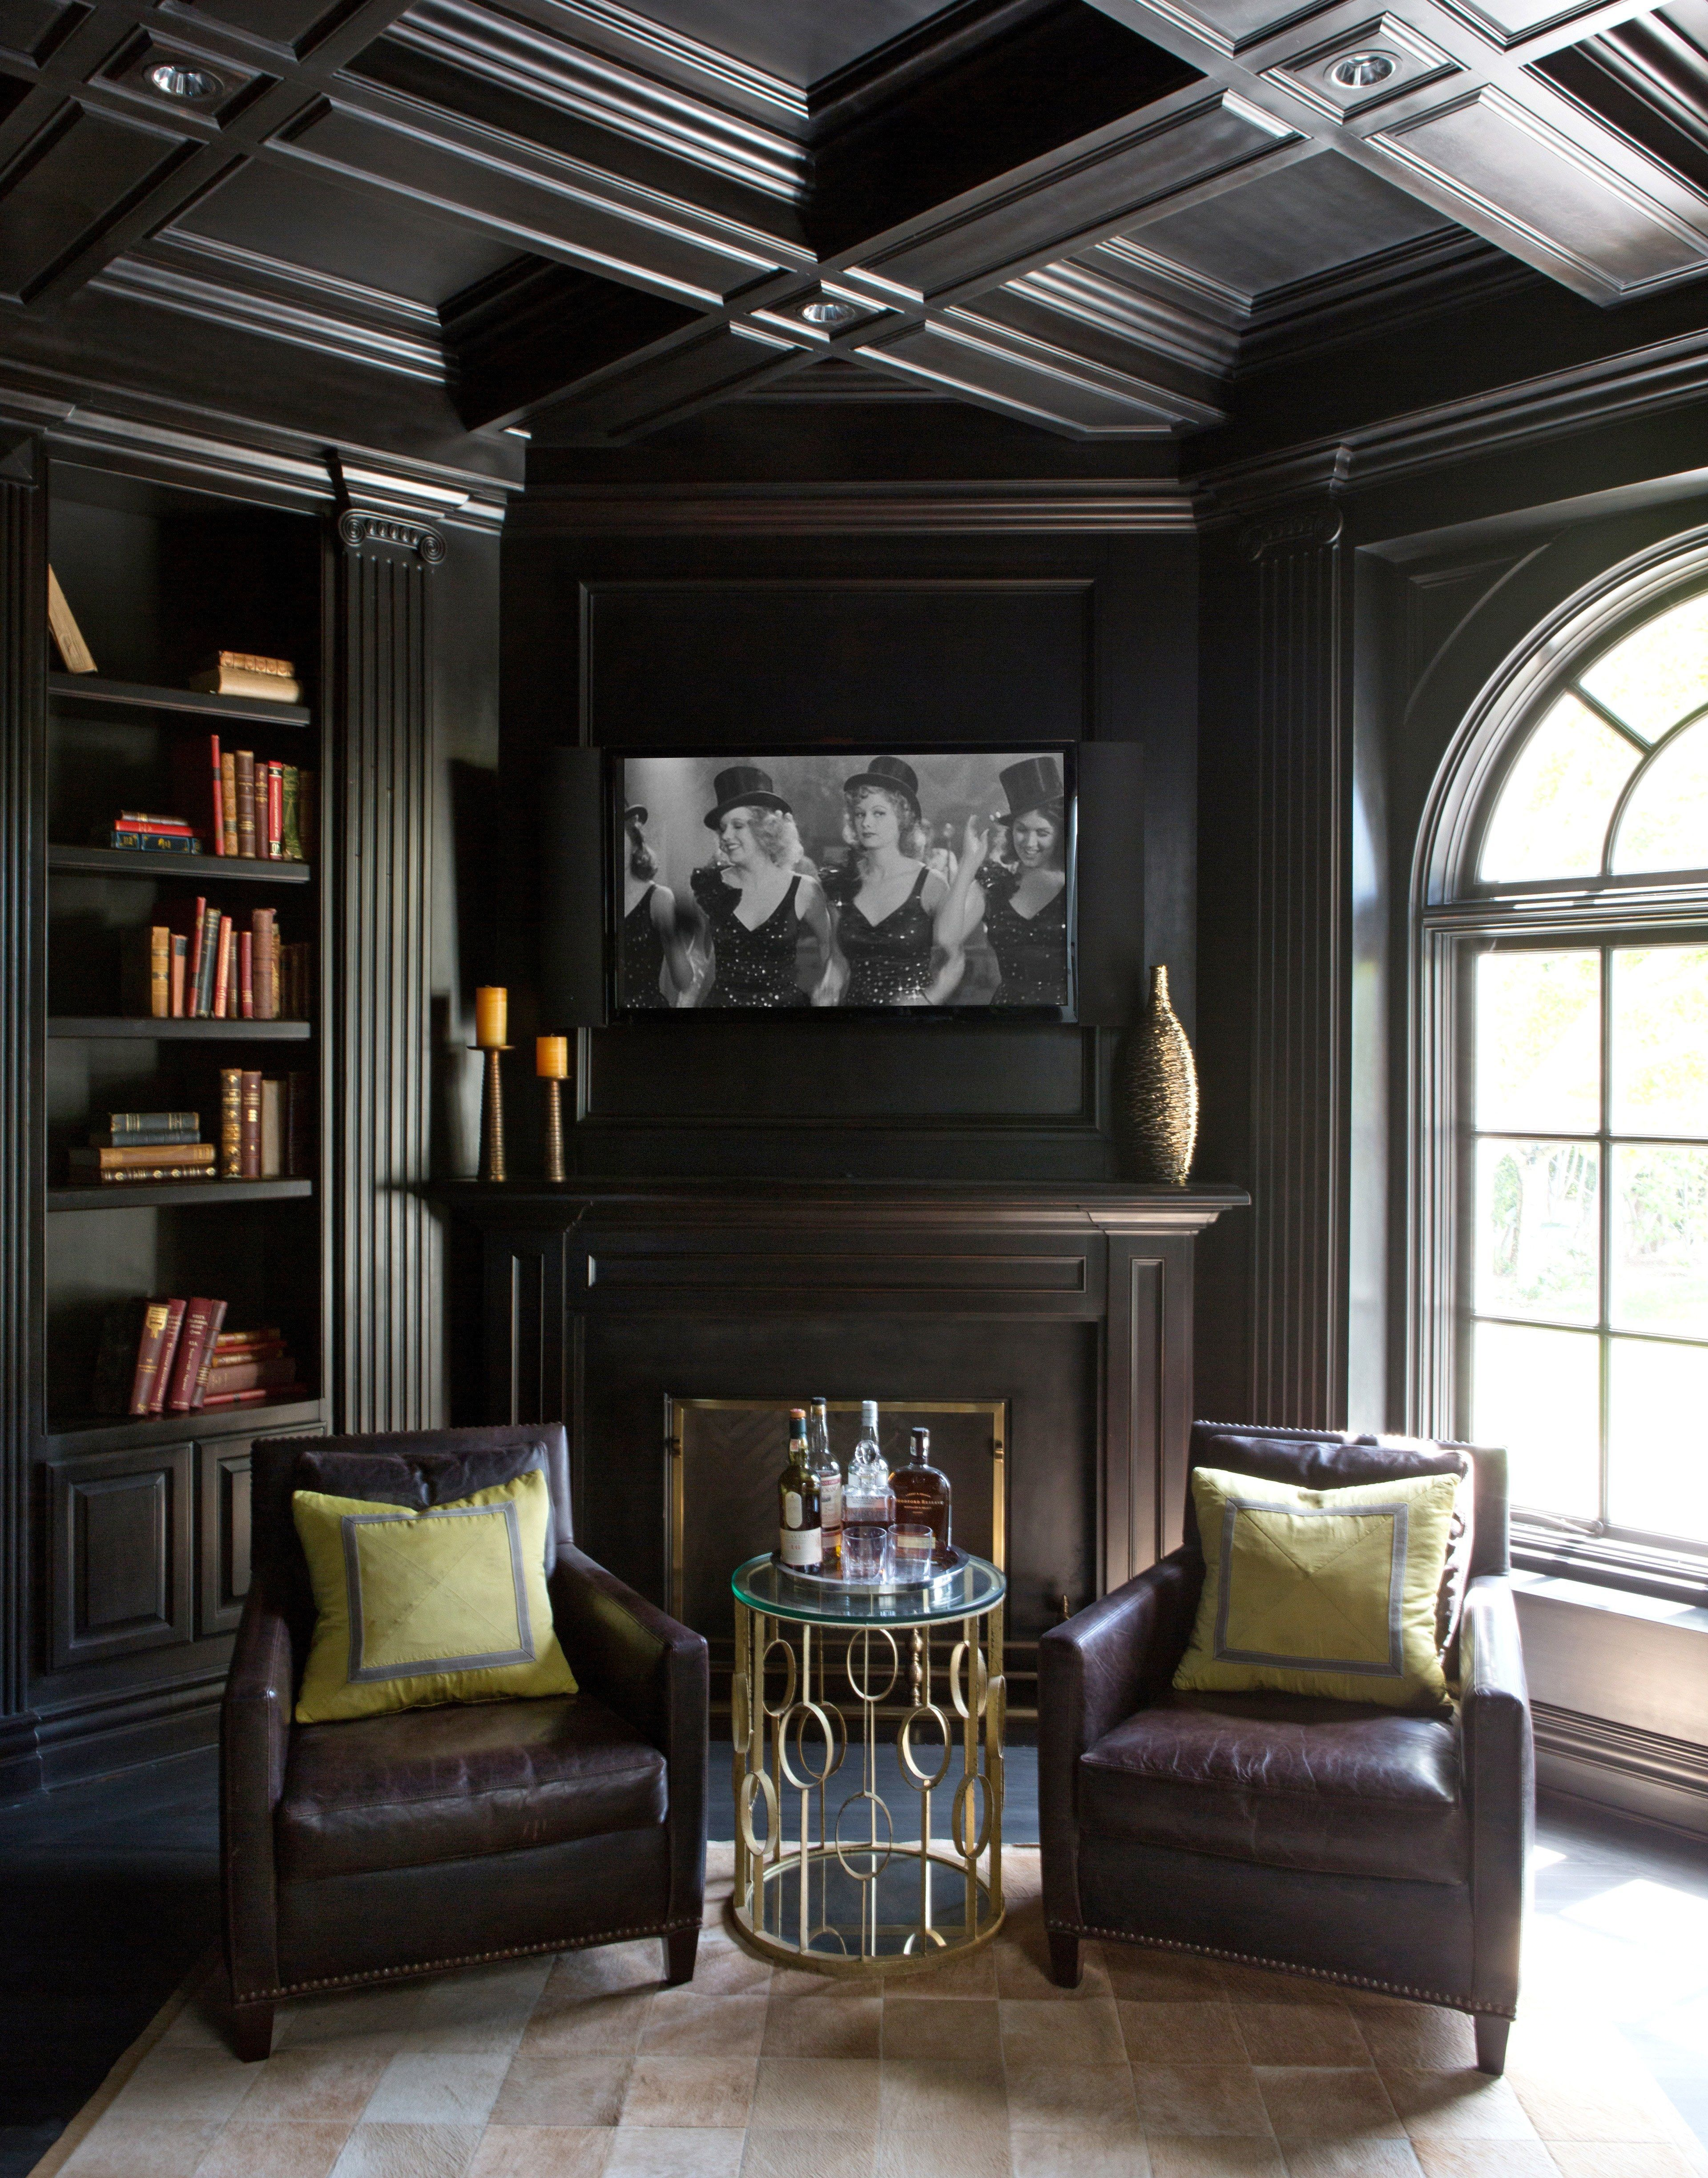 The Home Offices Dark Wood Panelling And Decor Give The